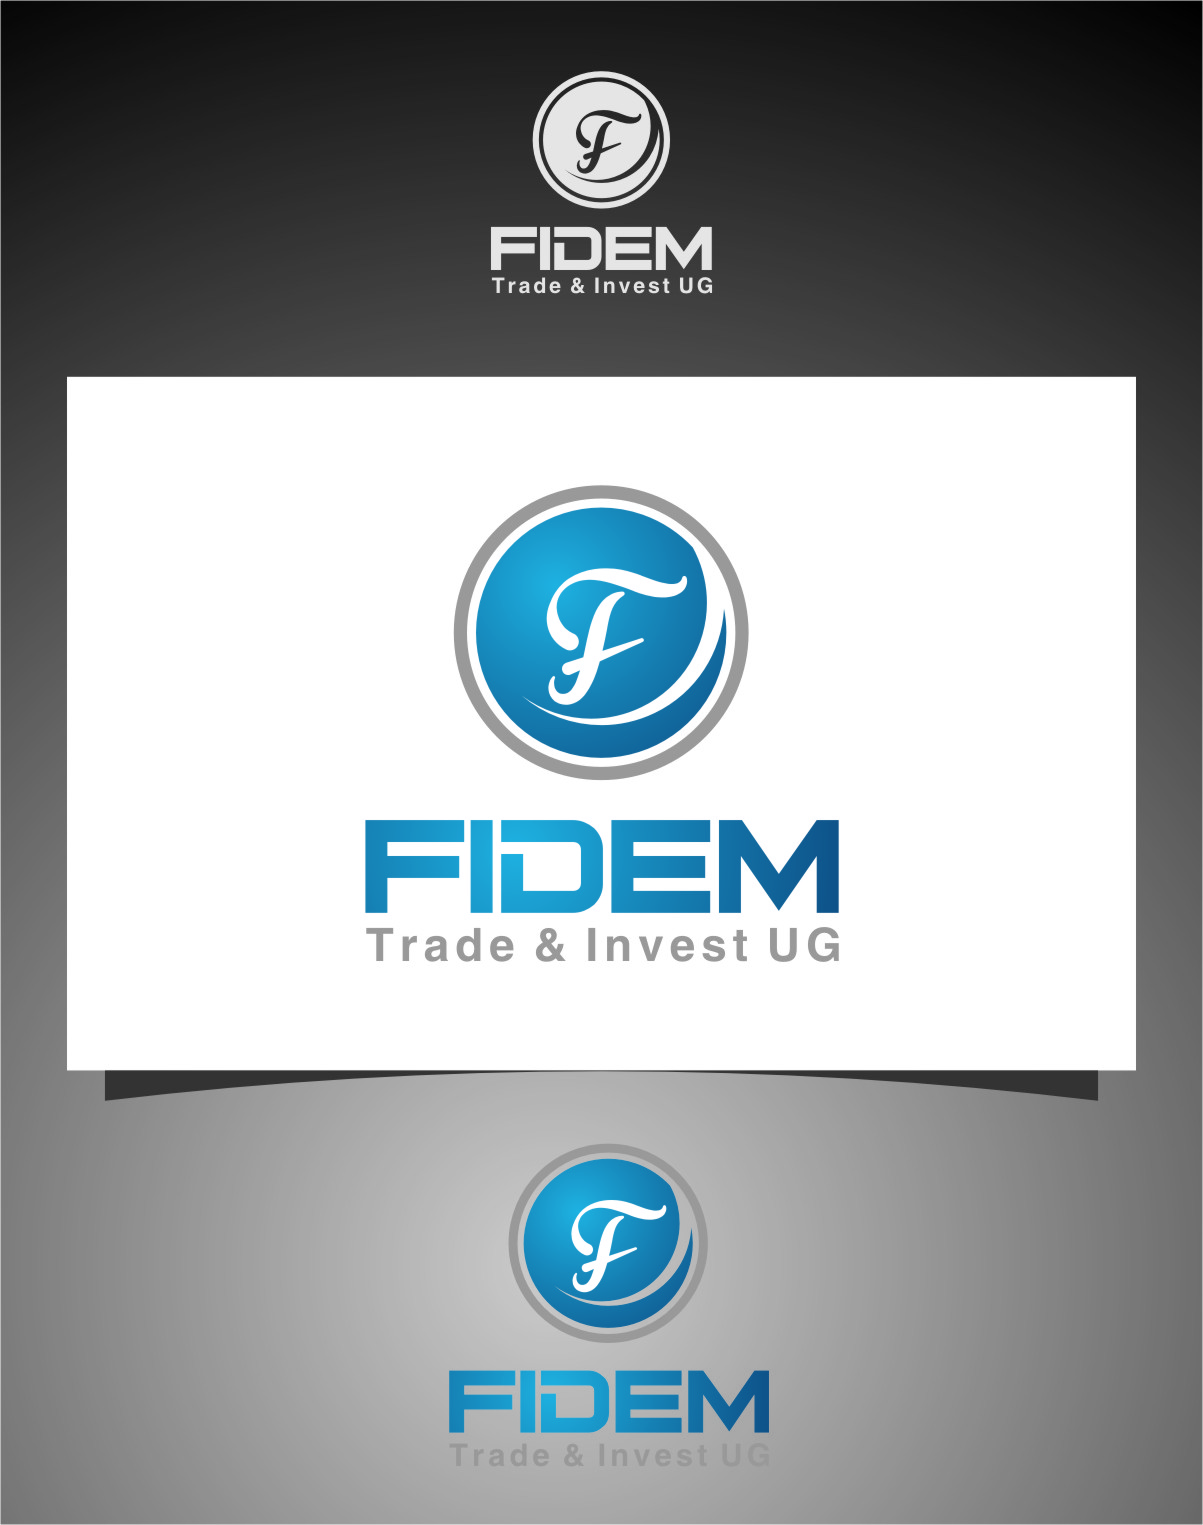 Logo Design by Ngepet_art - Entry No. 69 in the Logo Design Contest Professional Logo Design for FIDEM Trade & Invest UG.